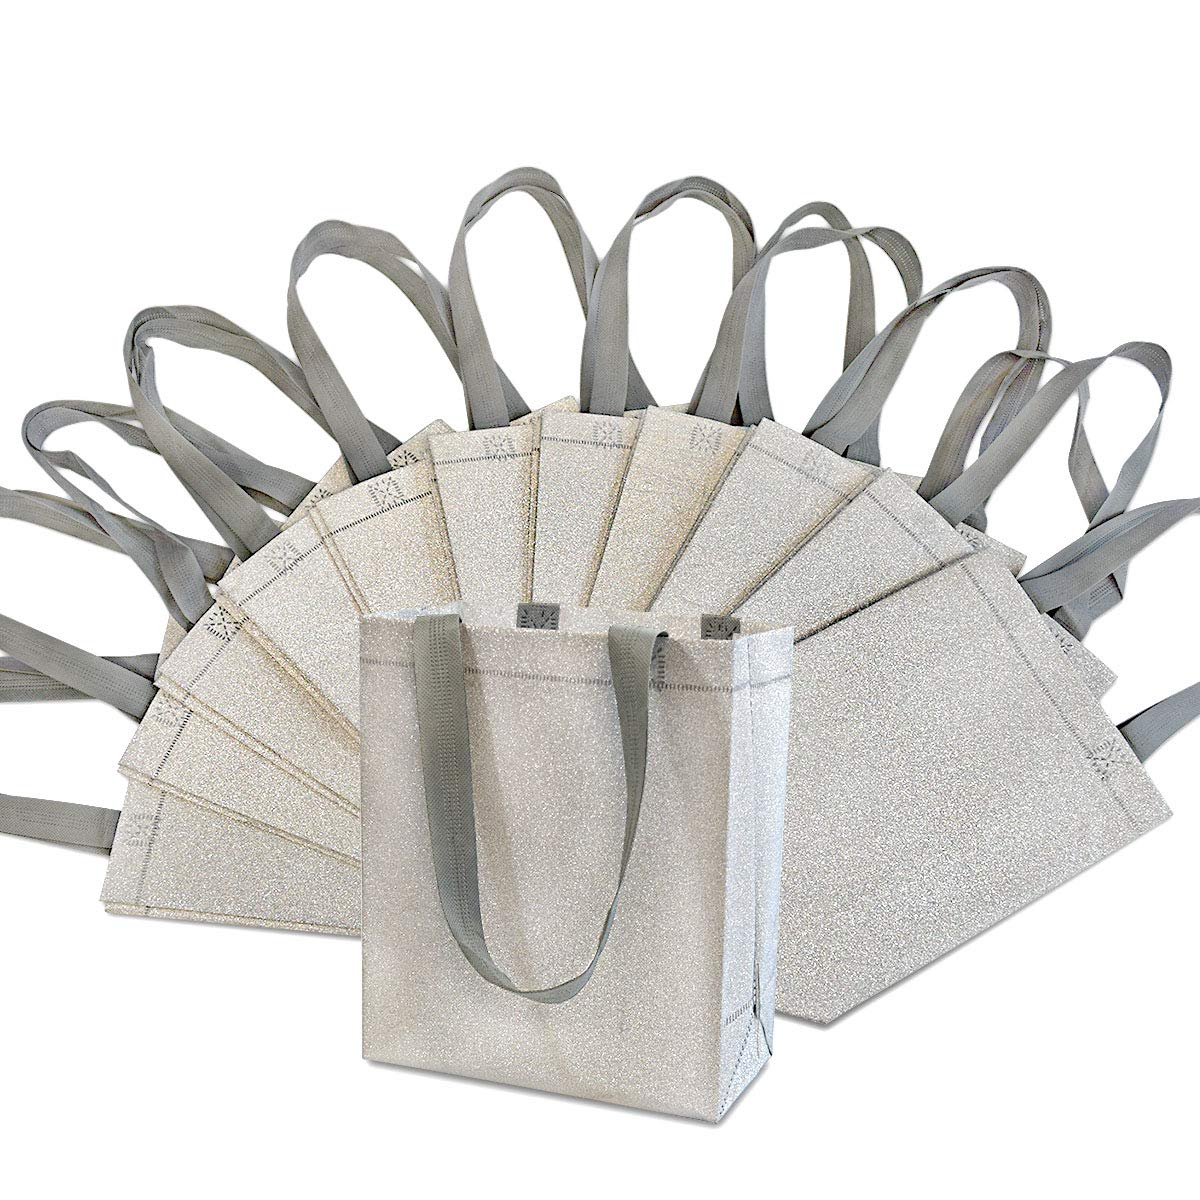 Medium-Small Metallic Silver Reusable Glitter Gift Bags with Handles Birthday Party Favor Bags Bags for Weddings 8x4x10 12 Pcs Holidays and All Occasions